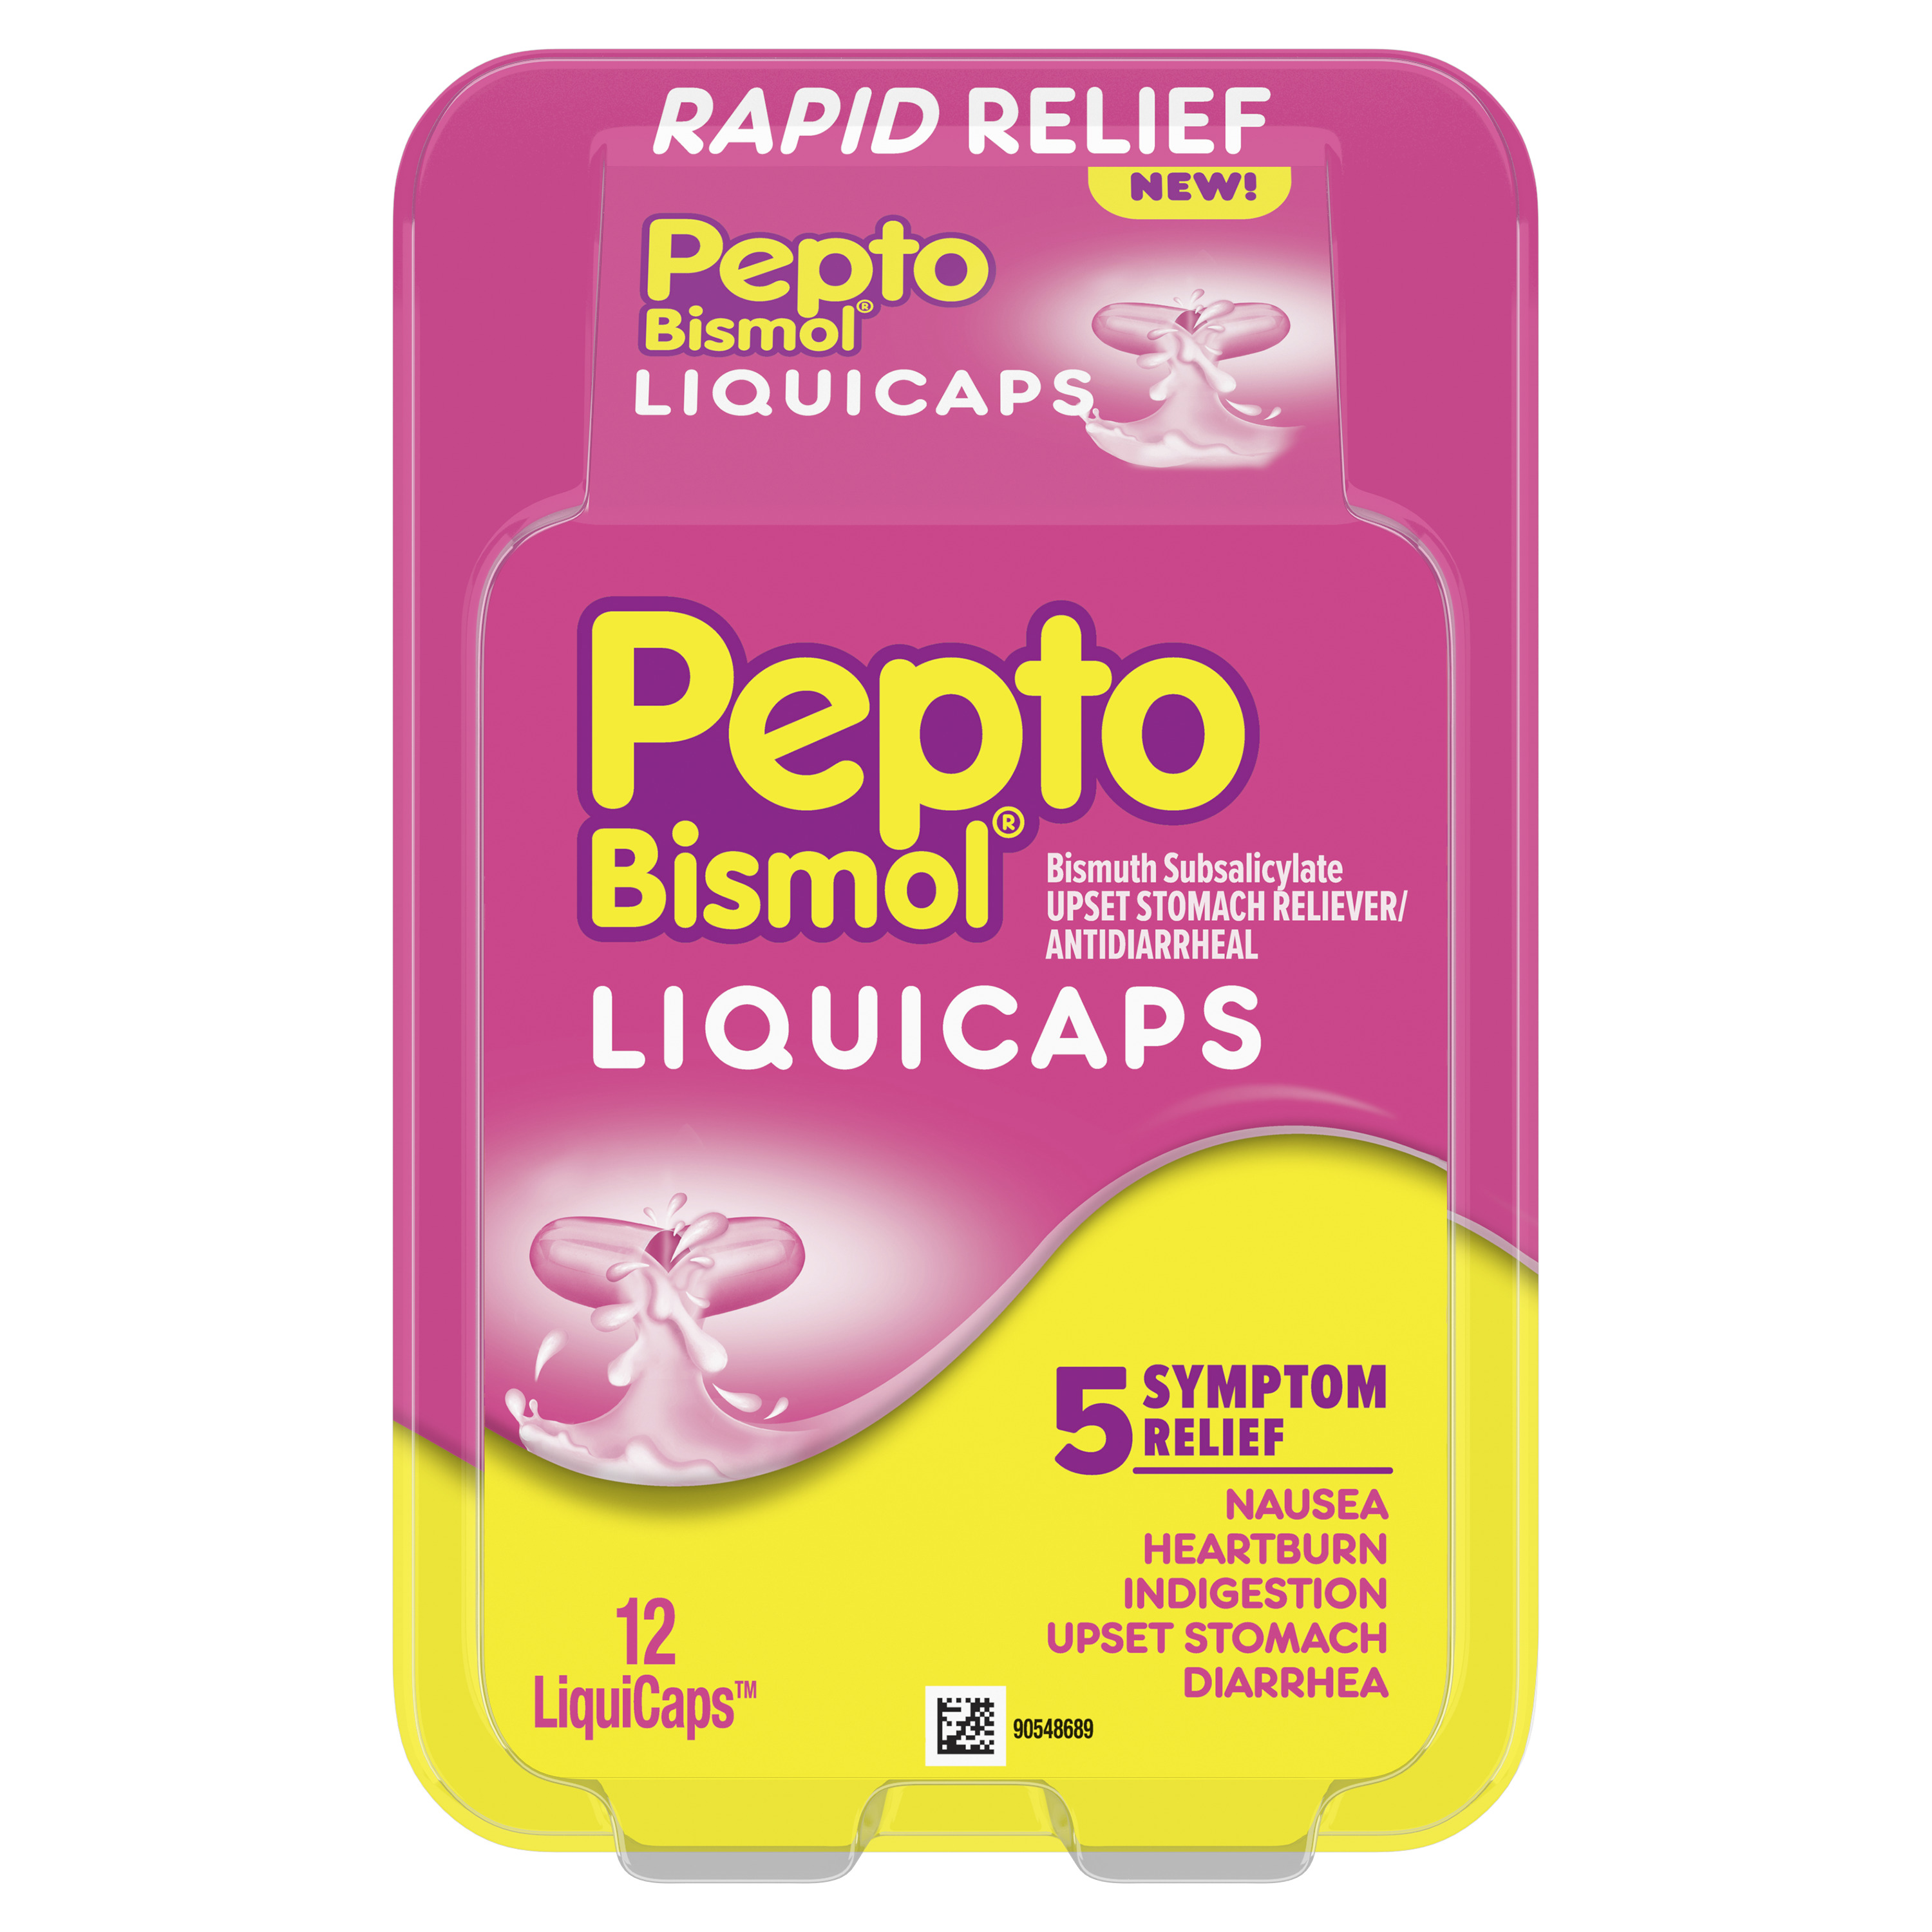 Pepto Bismol Liquicaps 12 Count Rapid Relief From Nausea Heartburn Indigestion Upset Stomach Diarrhea Walmart Com Walmart Com